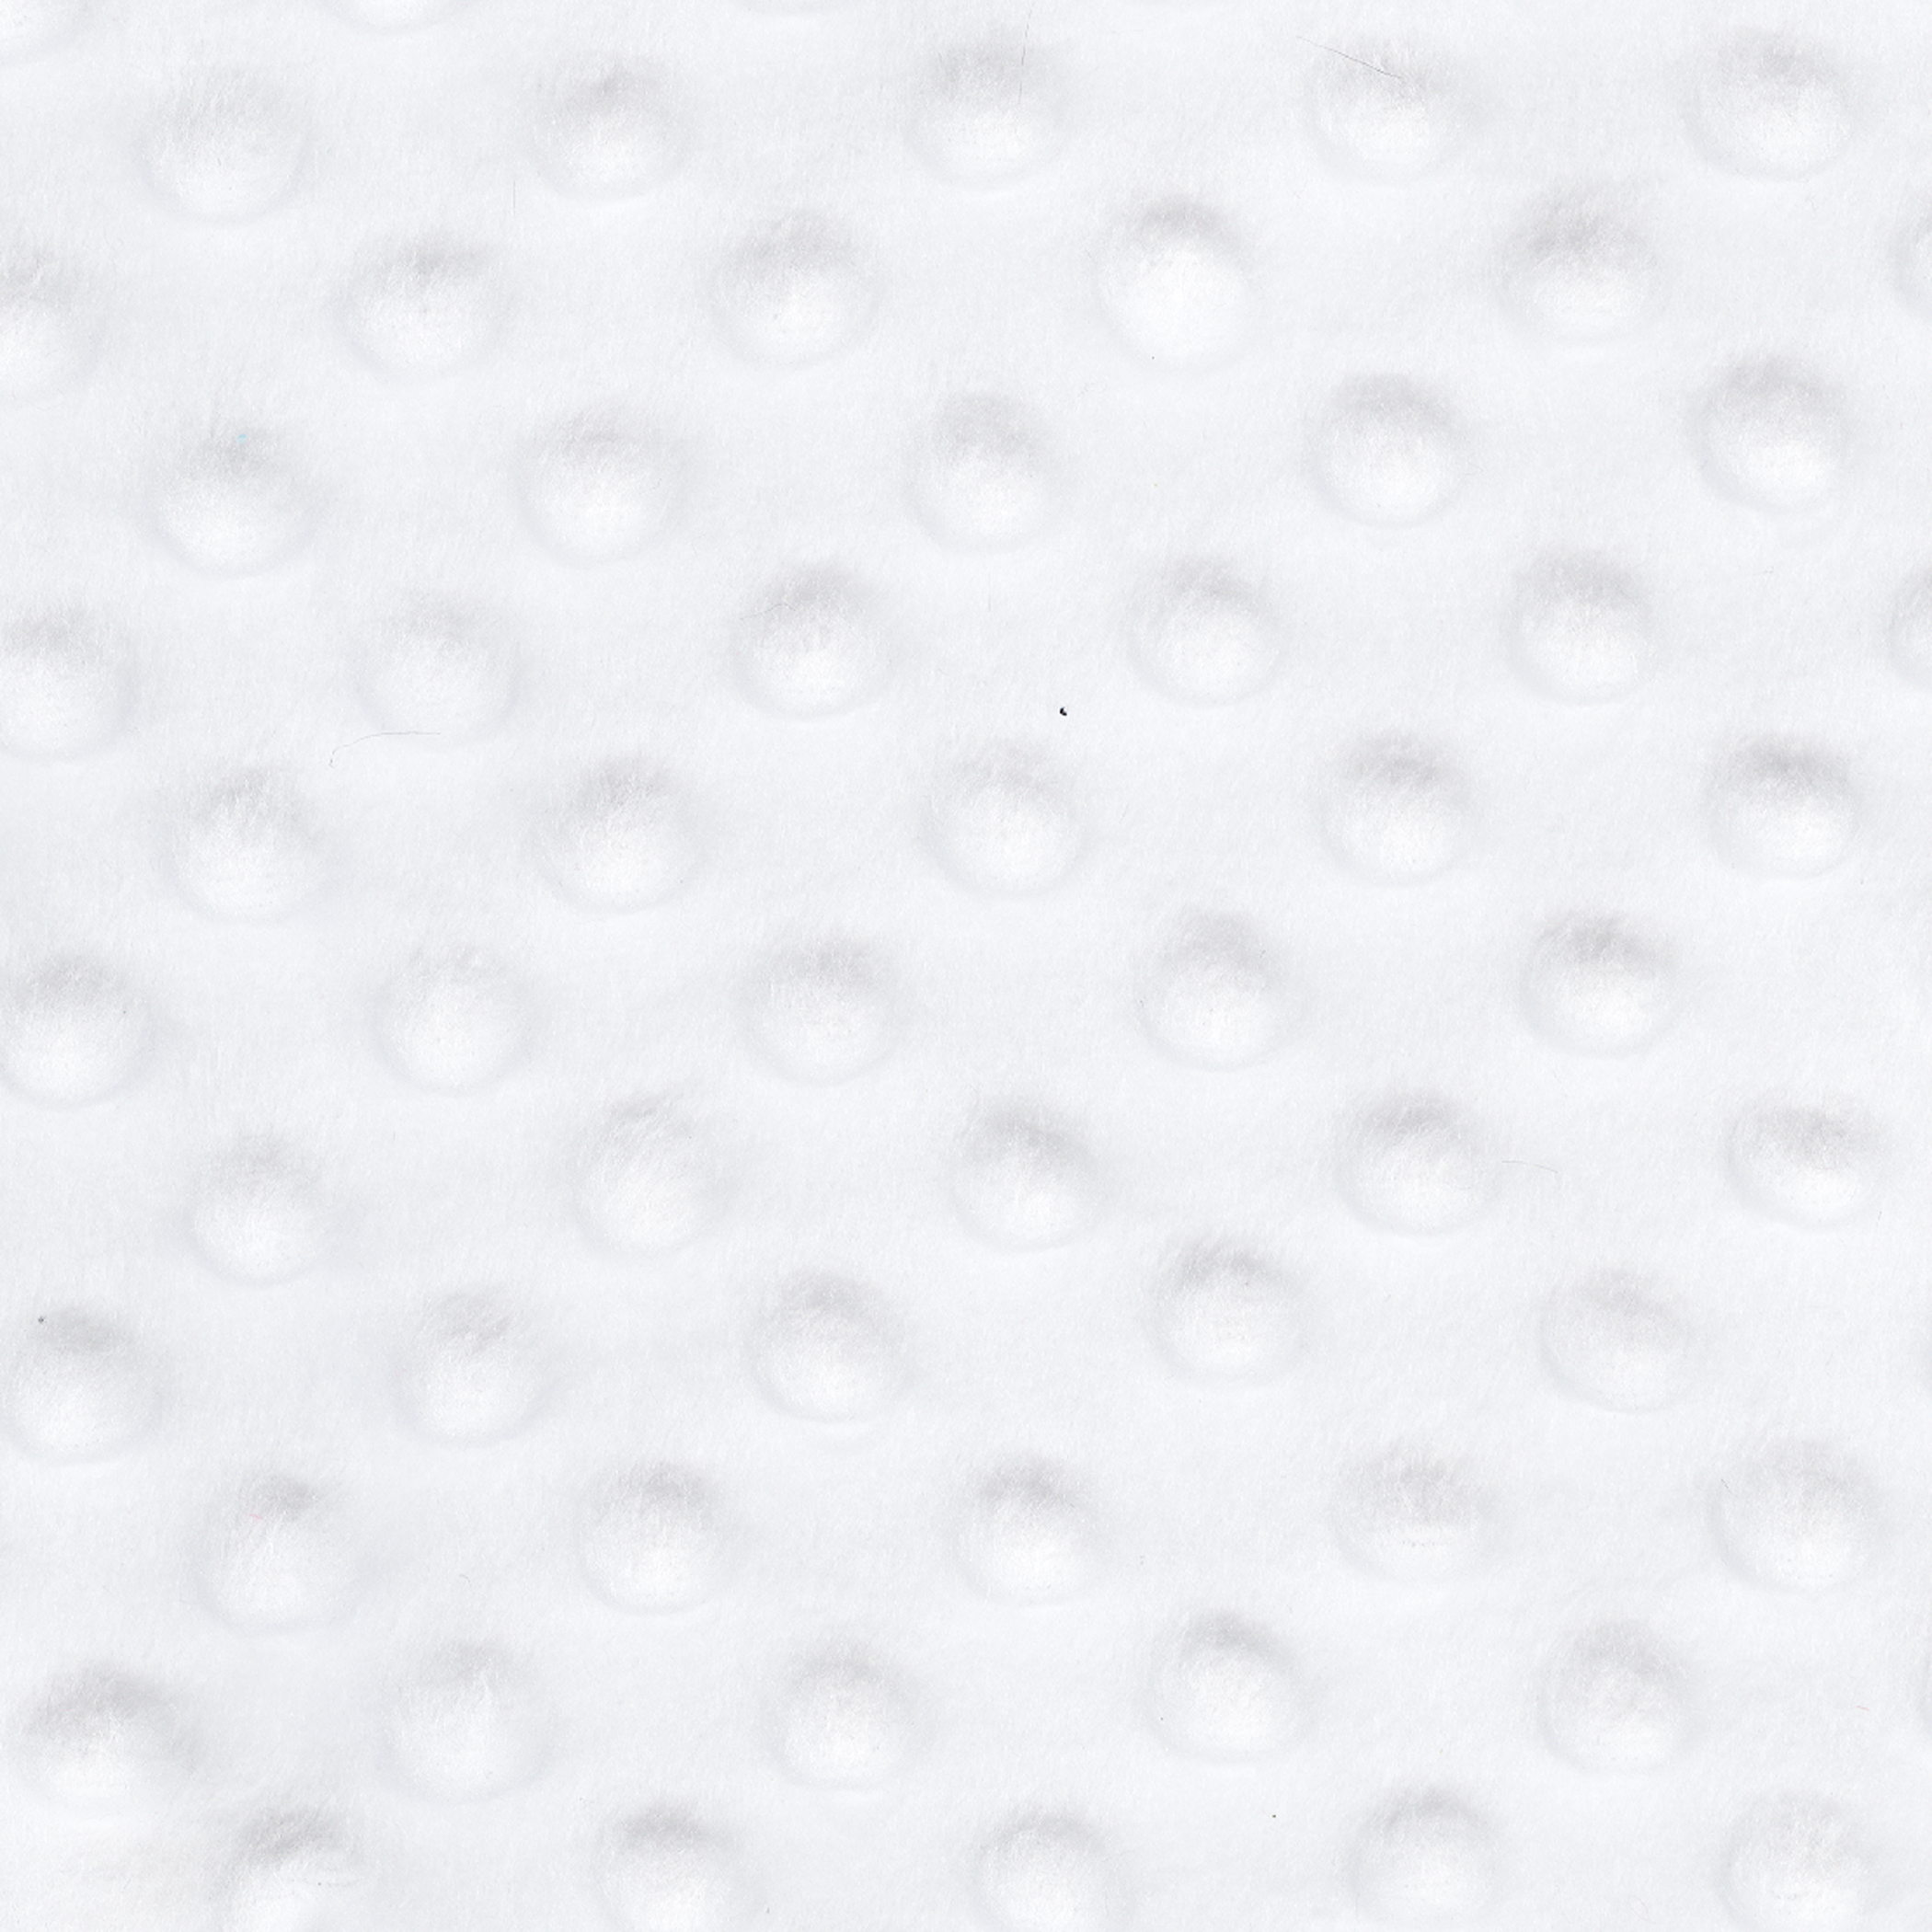 SHASON TEXTILE (2 Yards cut) SOFT CUDDLY MINKY DOT FLEECE, WHITE.